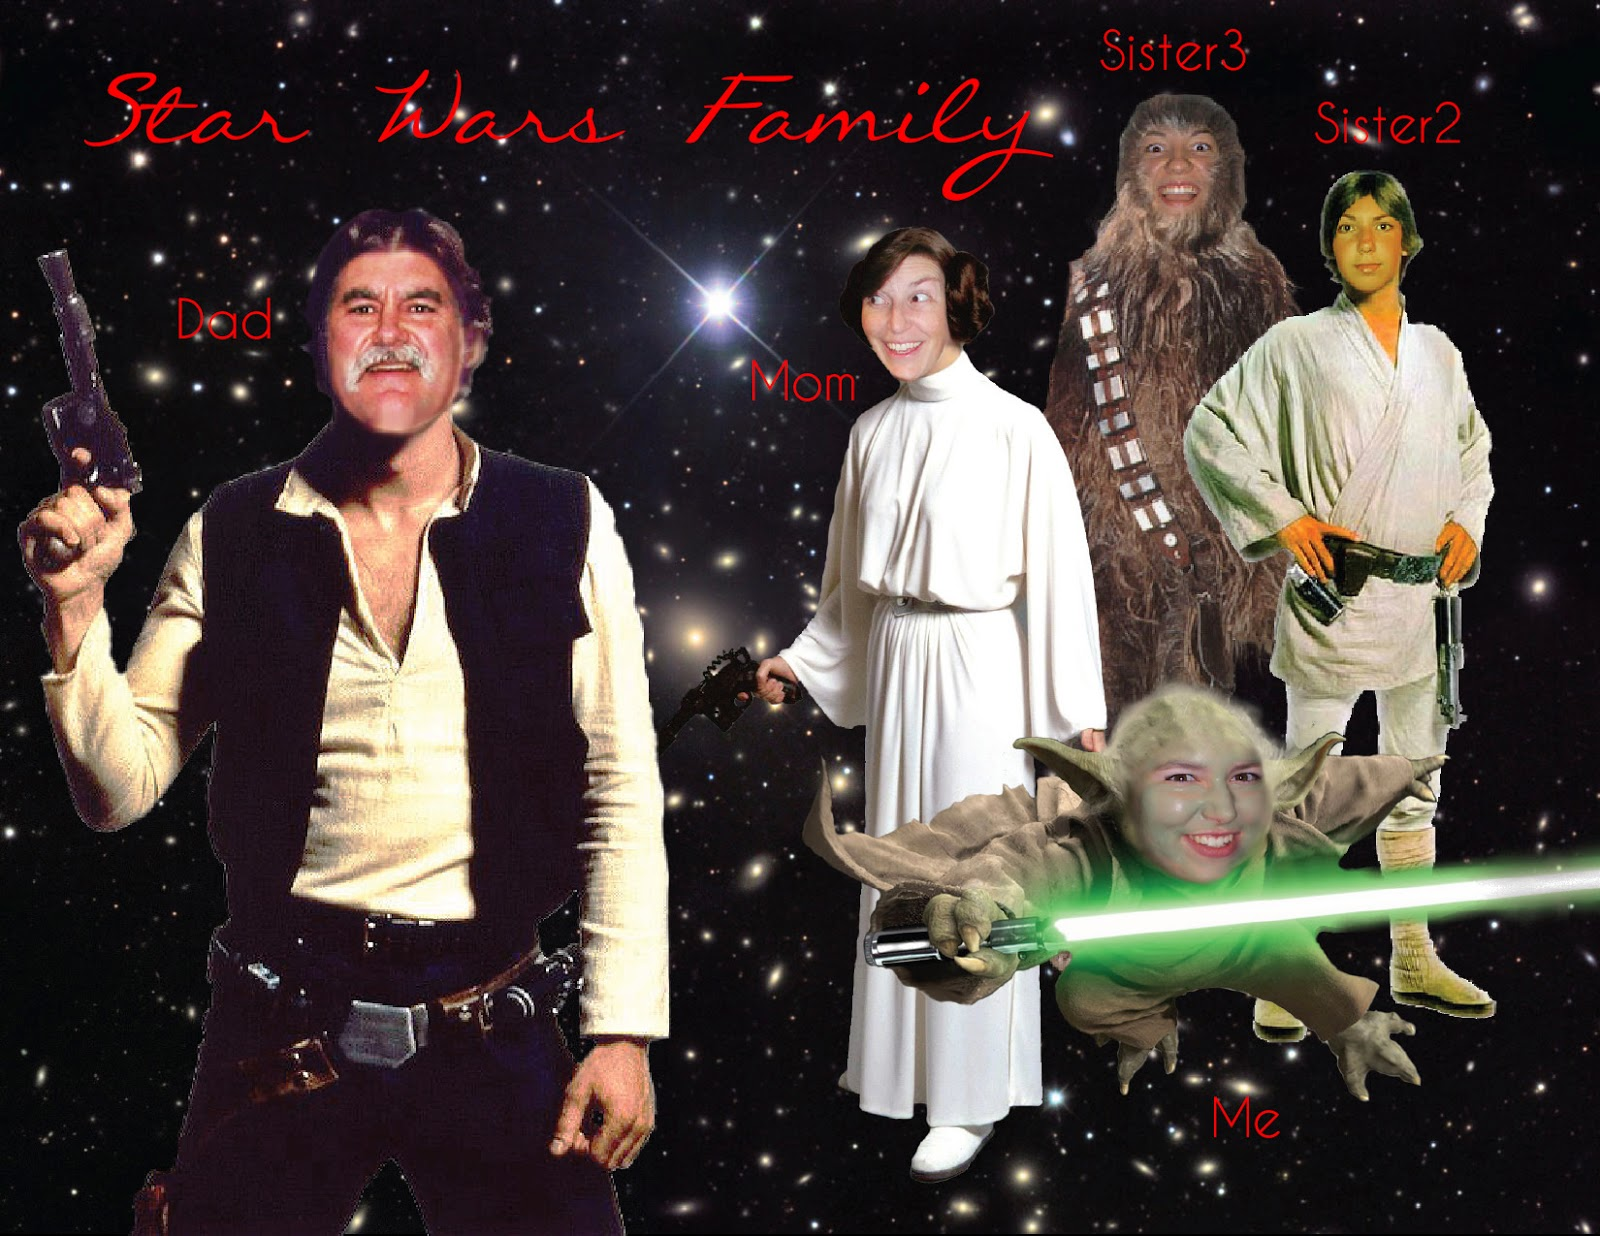 Jenn's family photoshopped onto Star Wars characters | Business, Life & Design